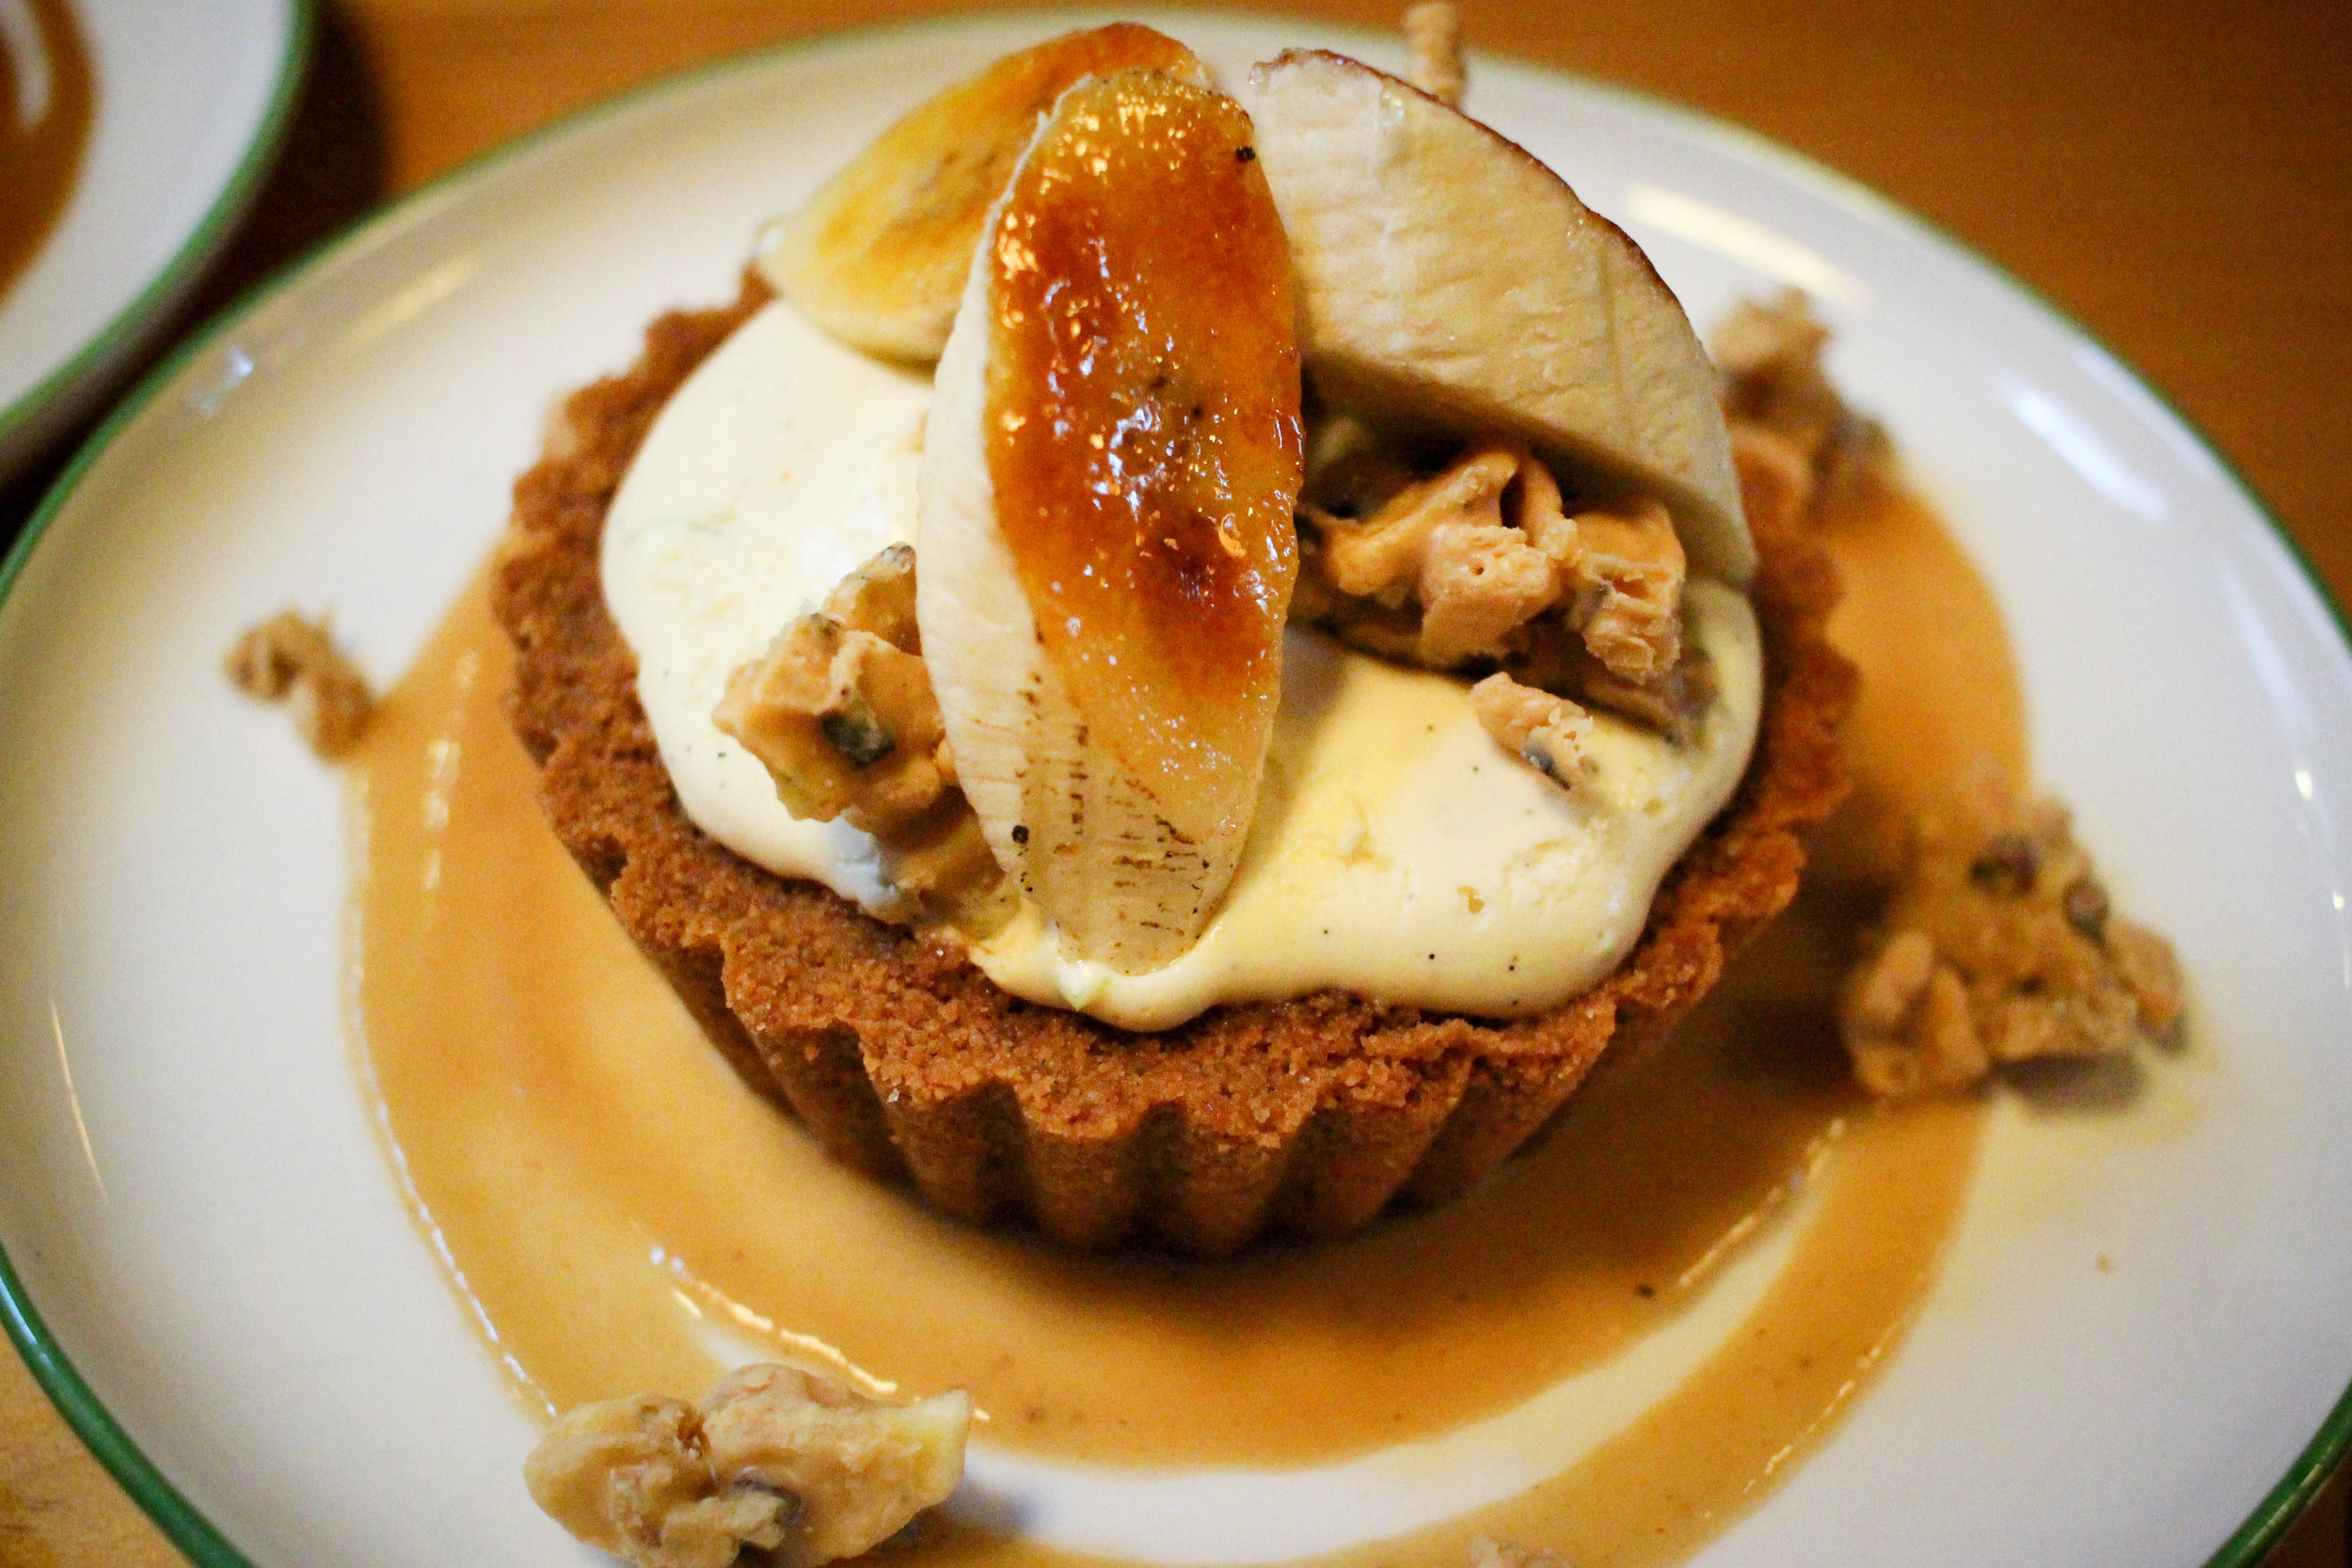 Banana–pear bavarian cream pie, pear butter, biscoff crumb, banana chip crunch